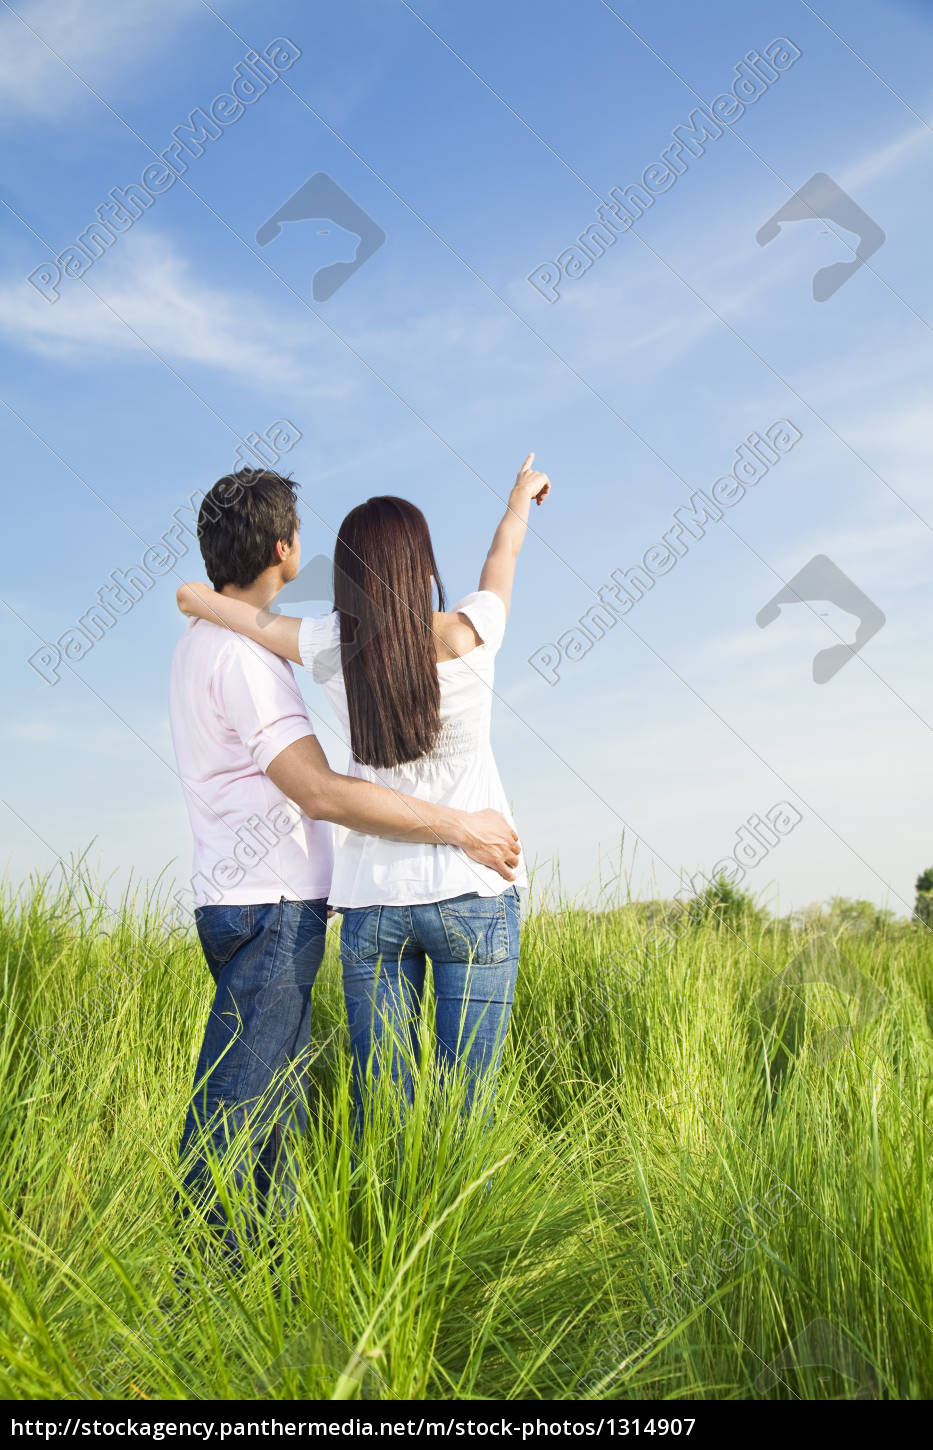 woman, togetherness, love, in love, fell in love, meadow - 1314907